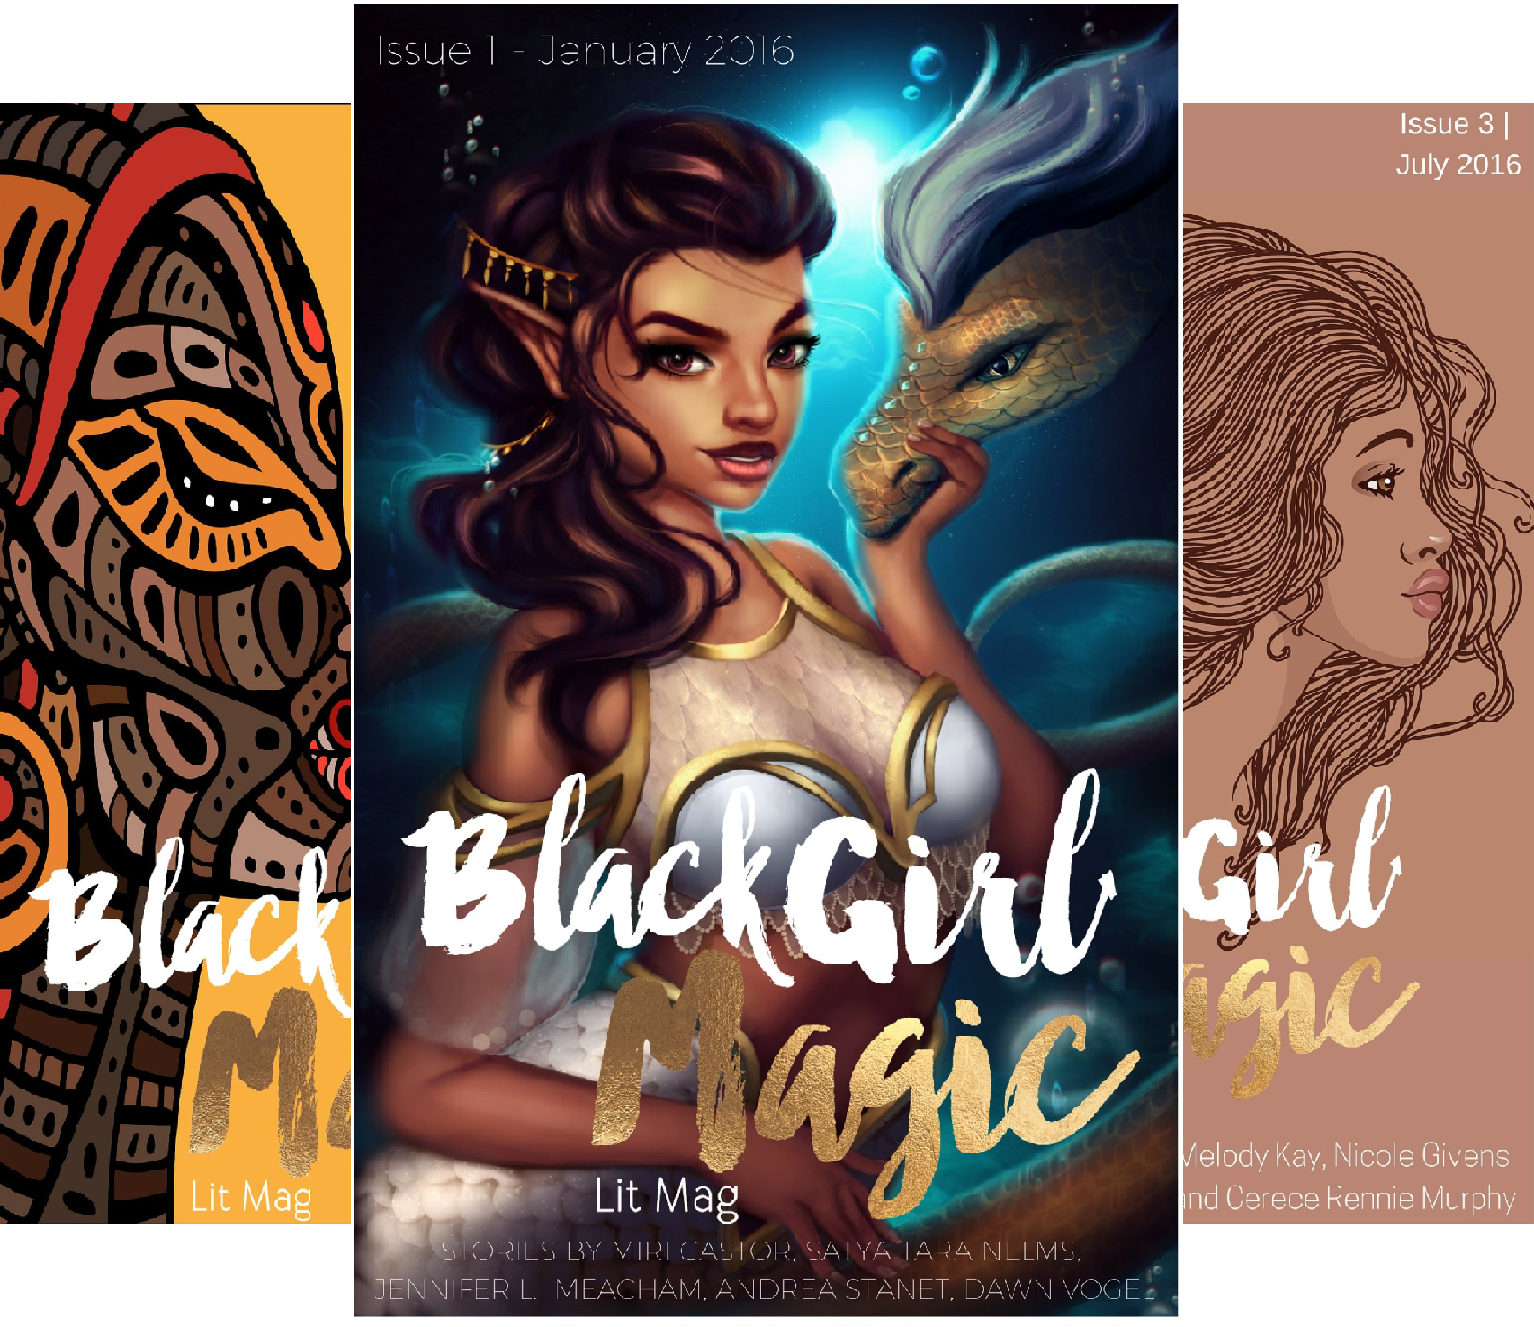 Black Girl Magic Lit Mag (5 Book Series)